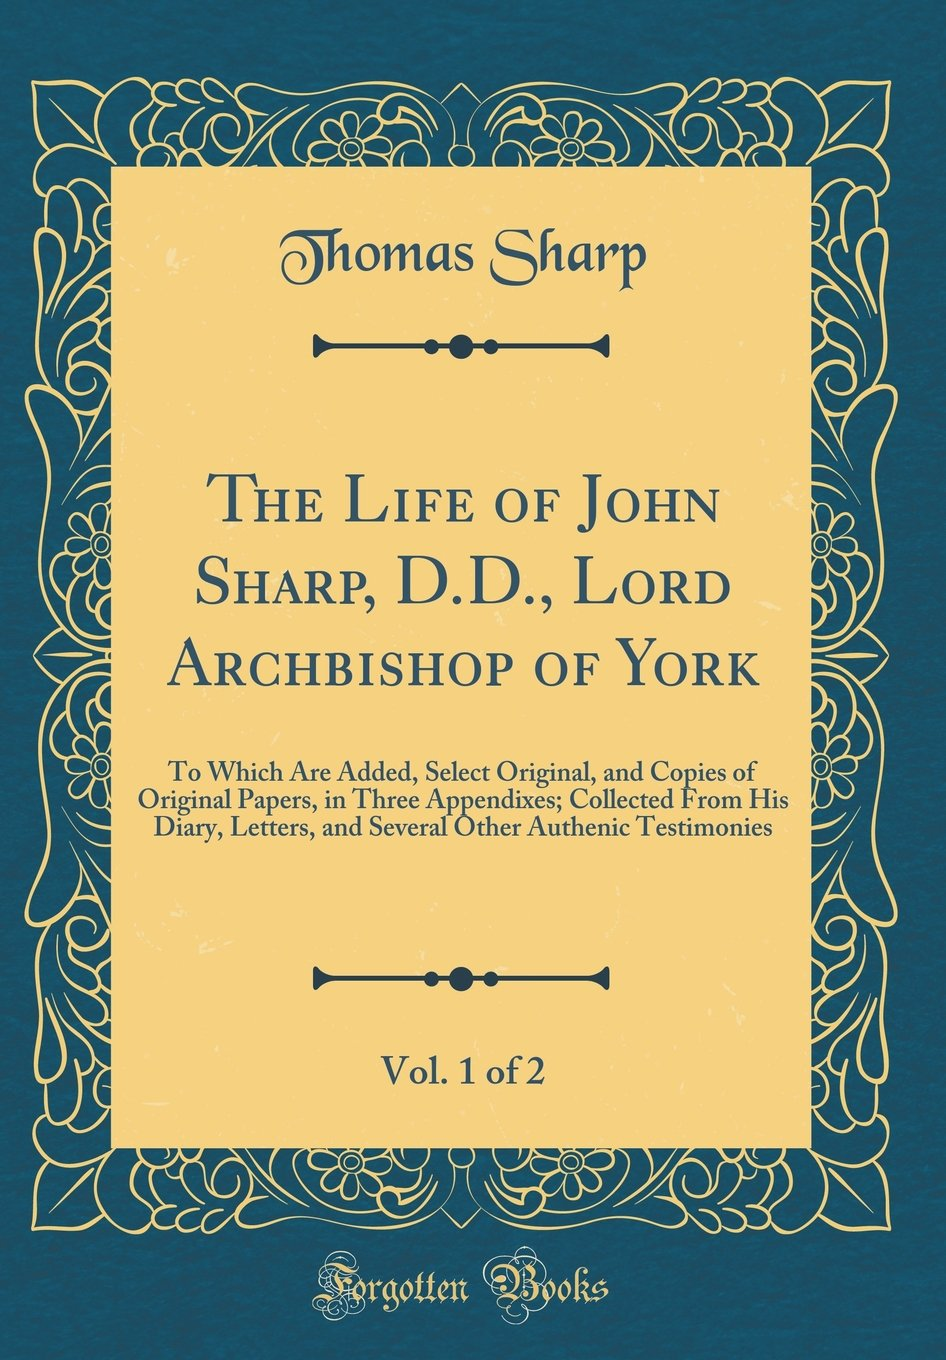 The Life of John Sharp, D.D., Lord Archbishop of York, Vol. 1 of 2: To Which Are Added, Select Original, and Copies of Original Papers, in Three ... Other Authenic Testimonies (Classic Reprint) PDF